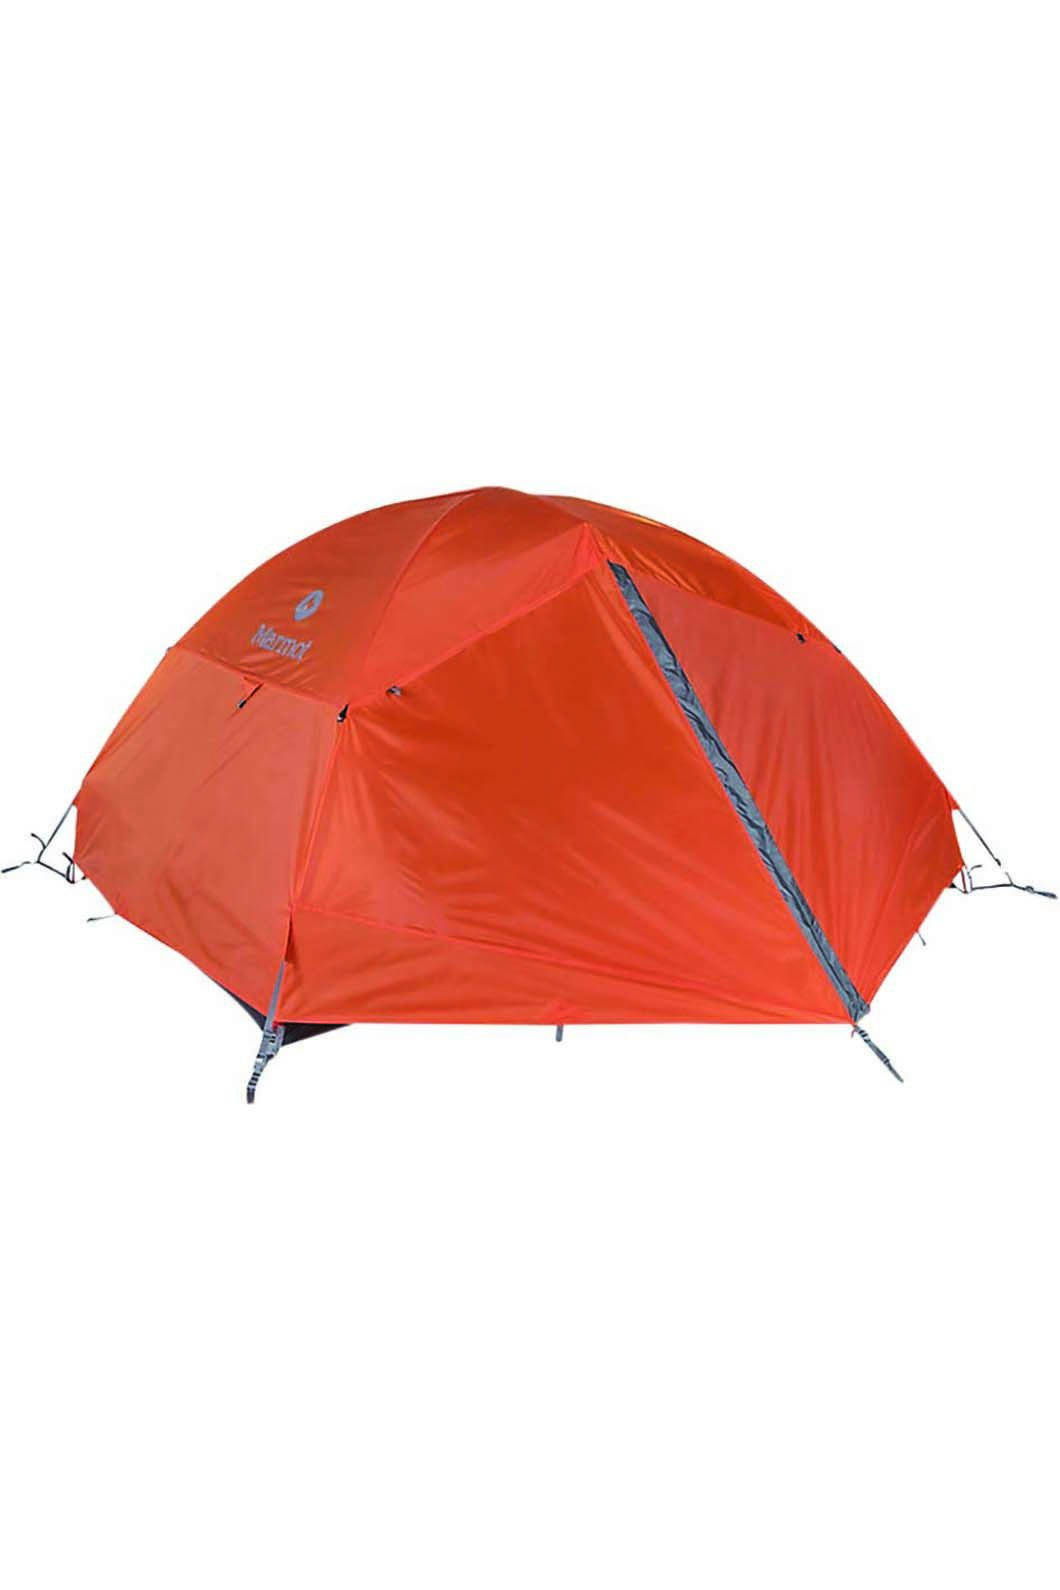 Marmot Fortress Hiking Tent 3 Person 3 Person, None, hi-res